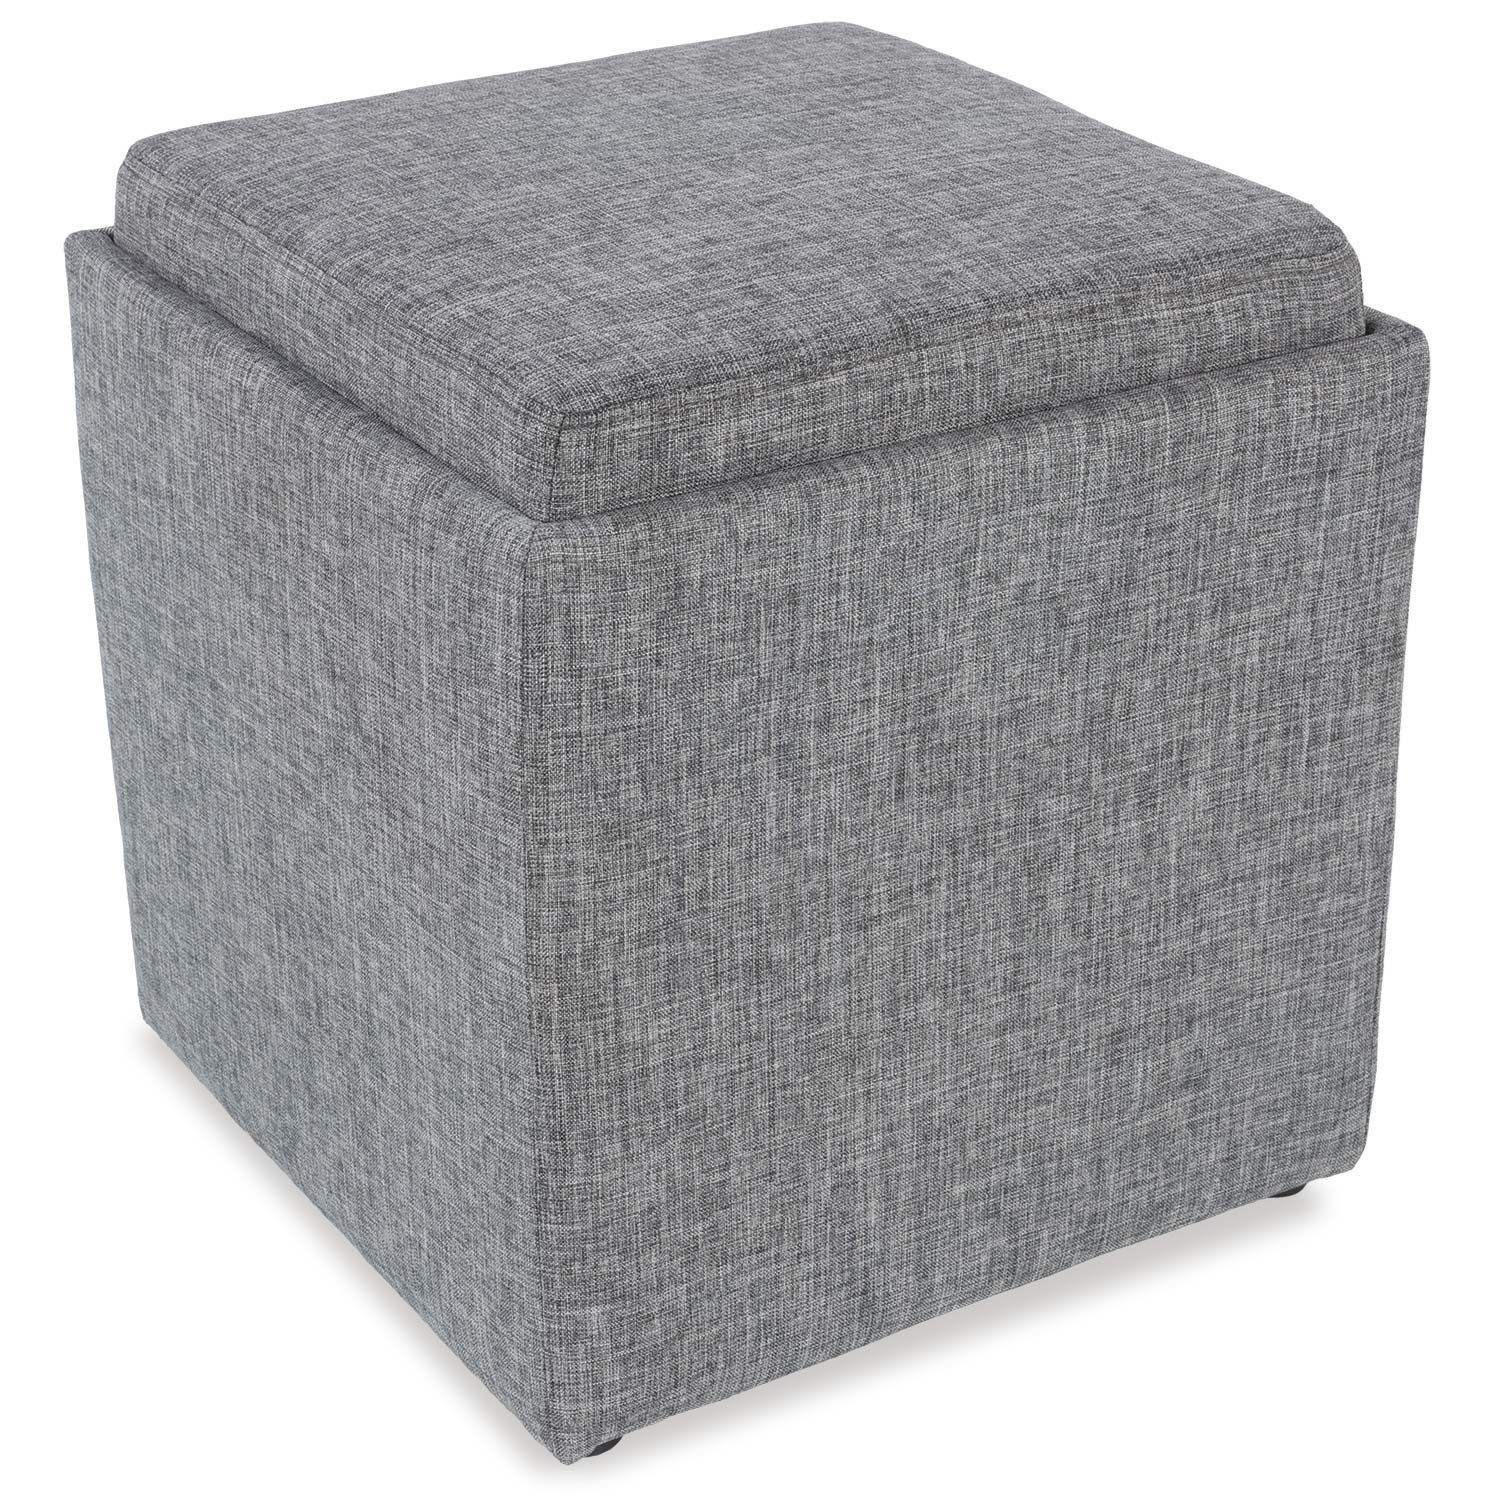 Merveilleux Picture Of Gray Storage Ottoman With Tray